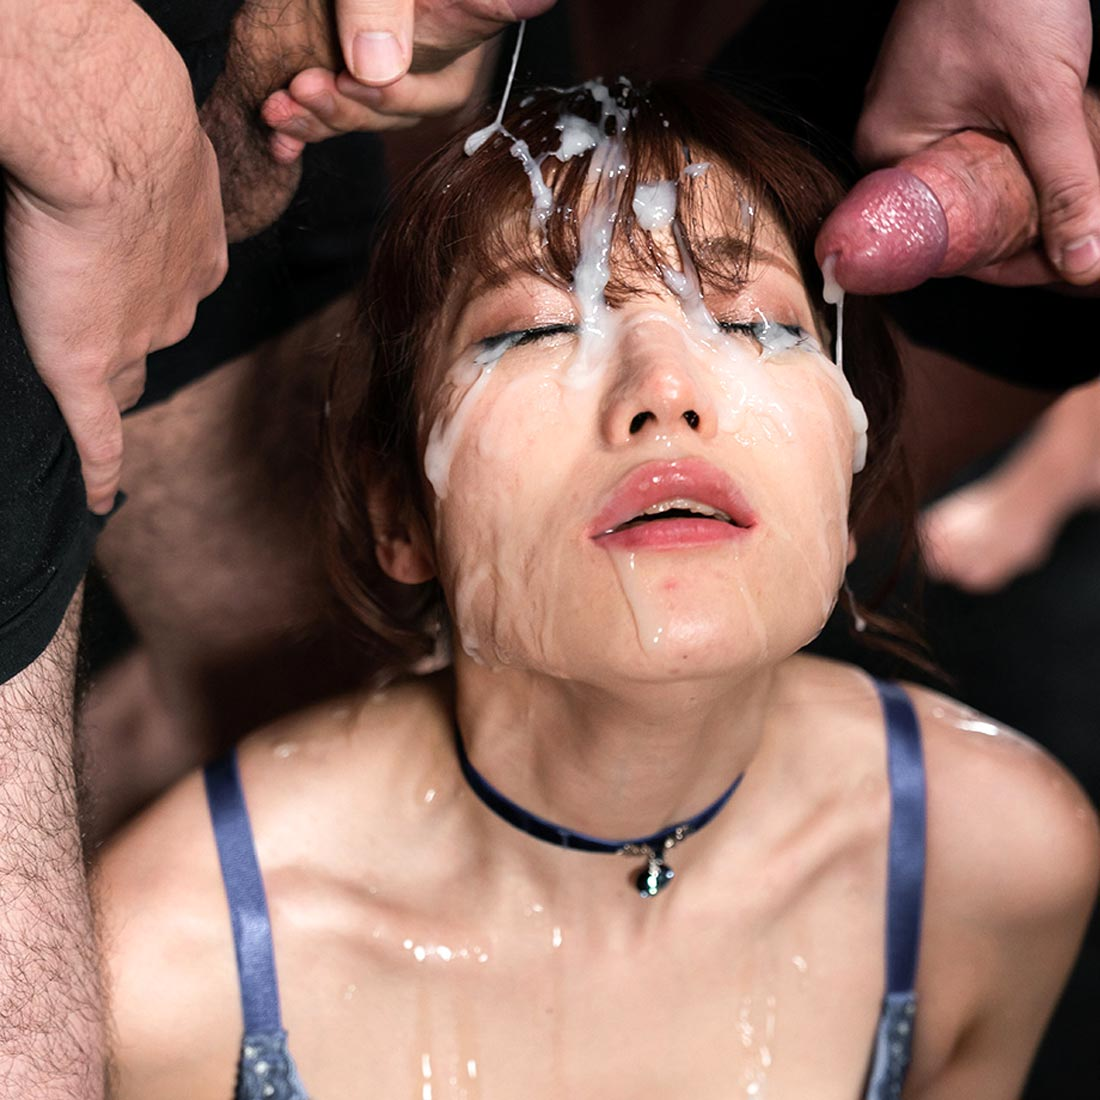 Mizuki's Sticky Bukkake Facial. A Japanese girl get her face covered in cum from 31 cumshots. Uncensored Facials Fetish from Japan.